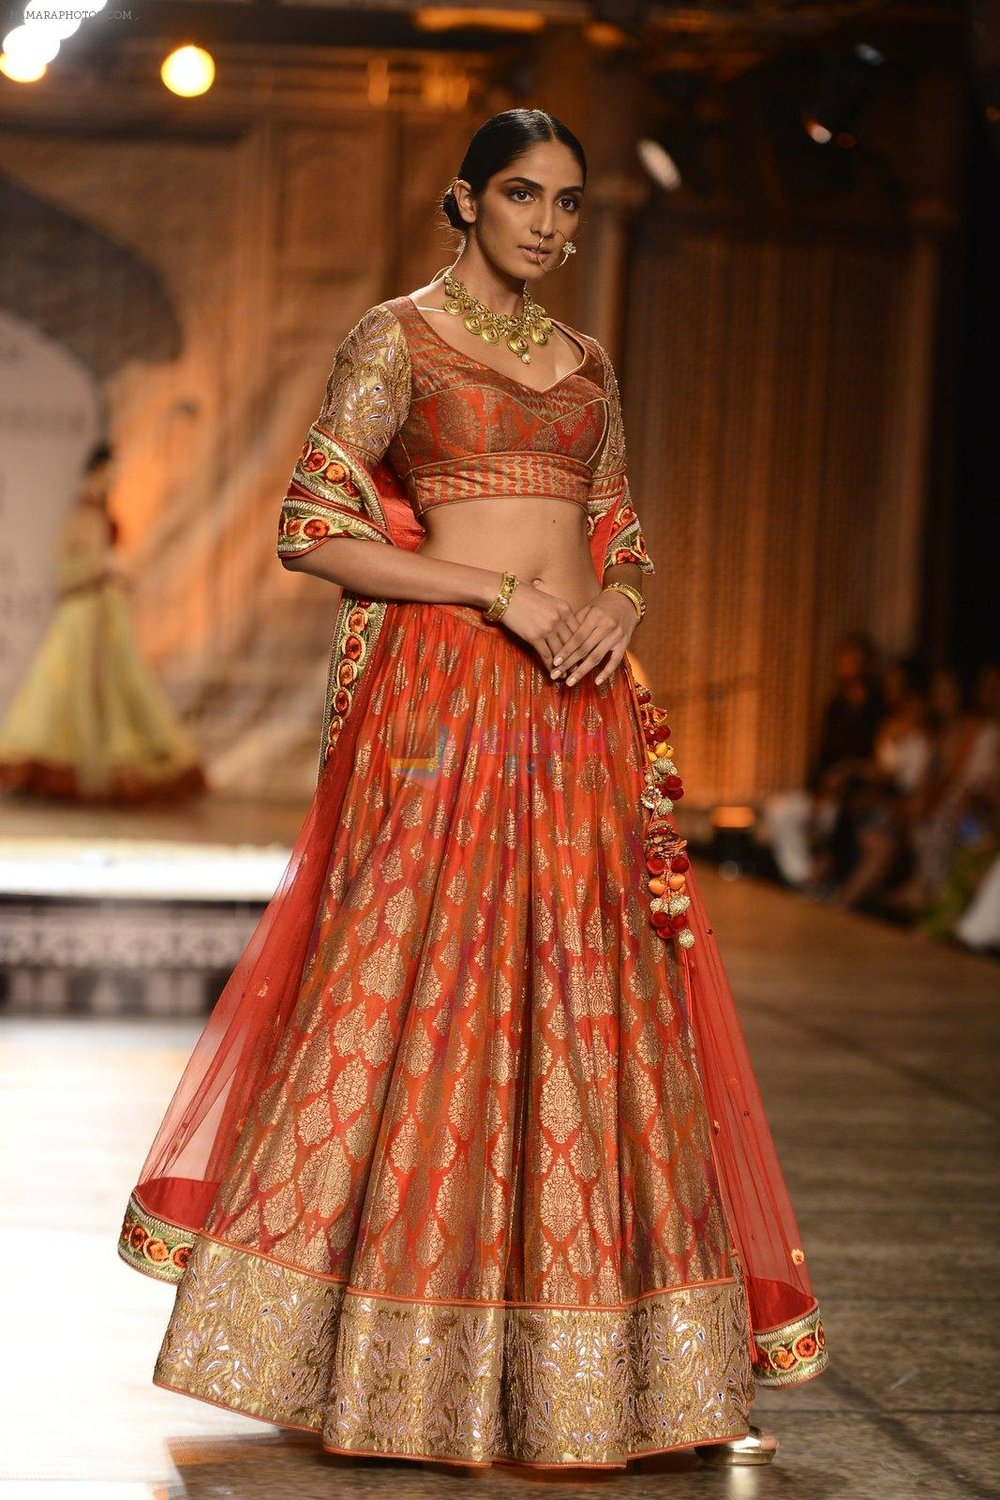 Models-Walk-the-ramp-for-Reynu-Taandon-at-the-FDCI-India-Couture-Week-2016-4.jpg